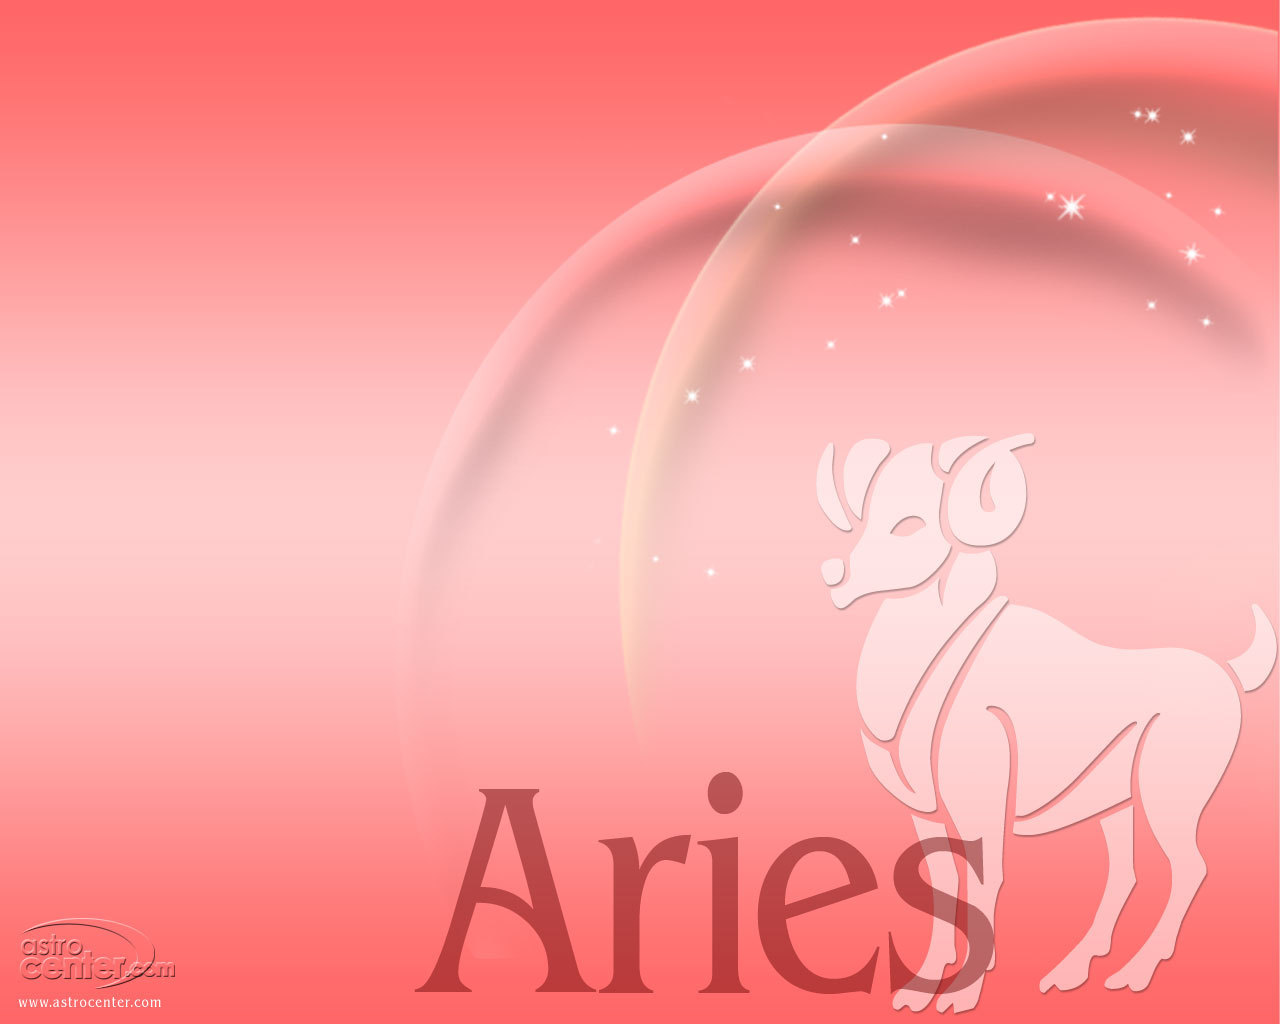 Aries images Aries pink HD wallpaper and background photos 1280x1024